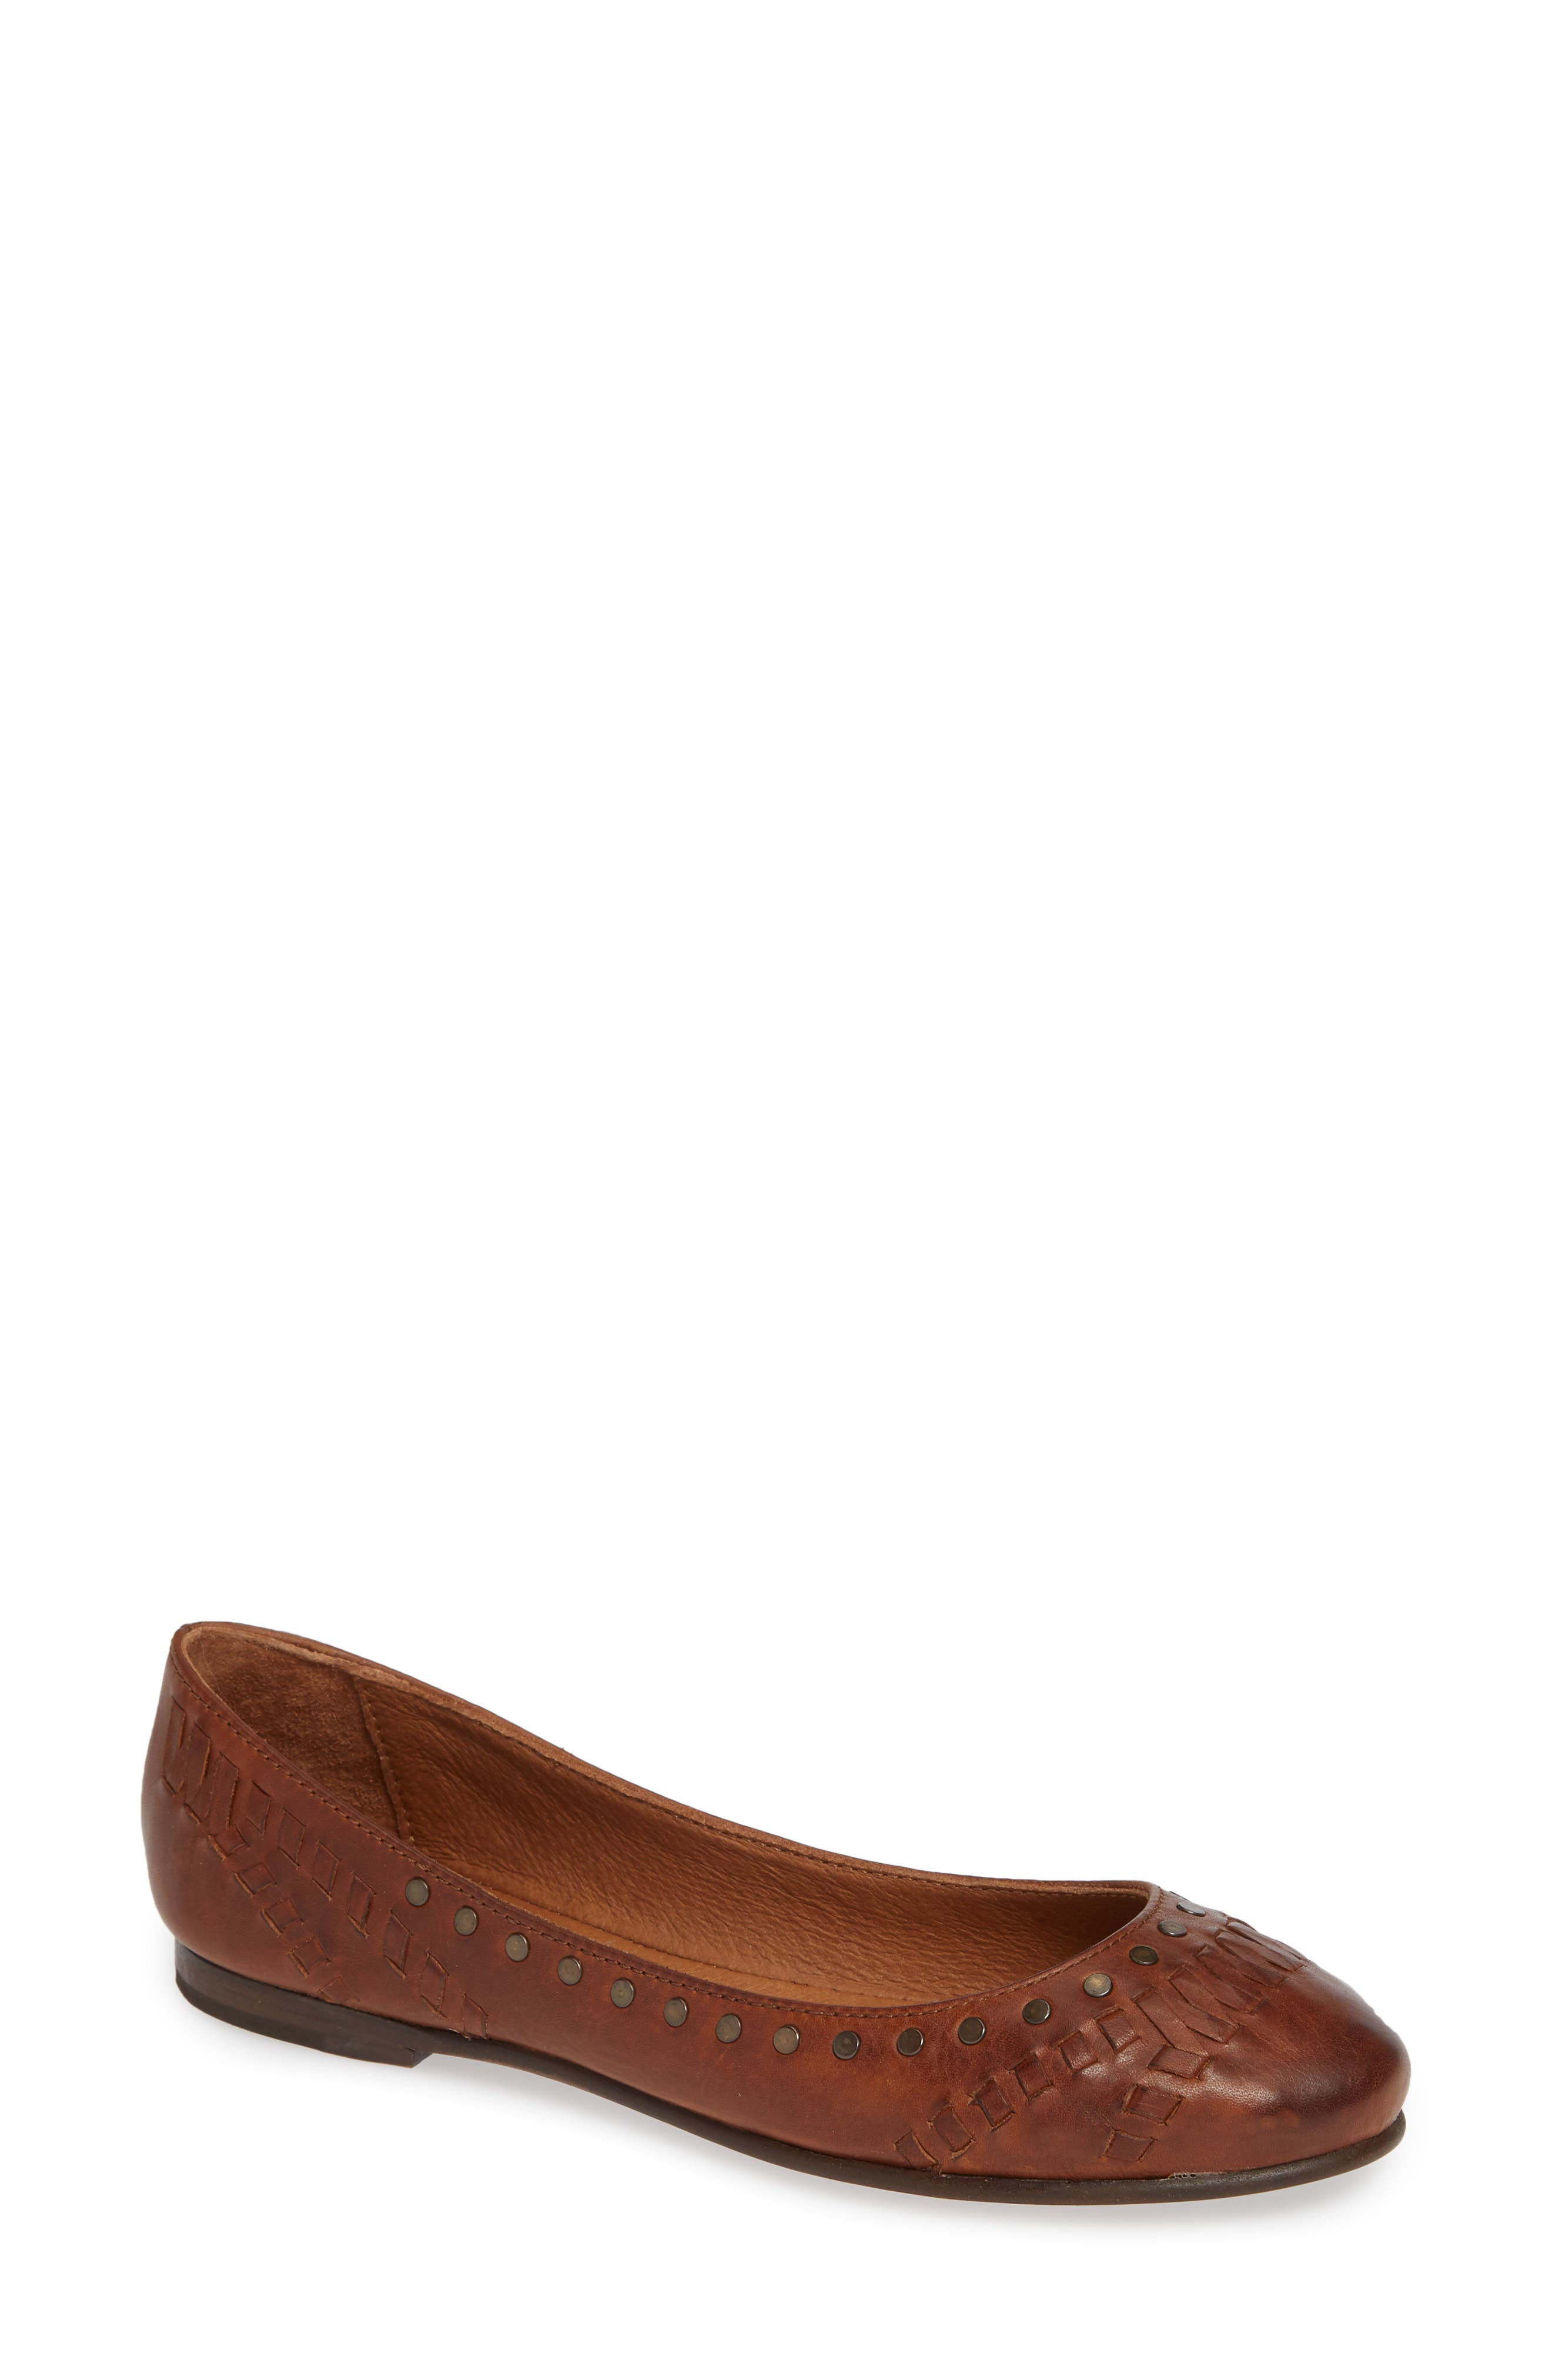 Carson Whipstitch Ballet Flat,                             Main thumbnail 1, color,                             COGNAC LEATHER